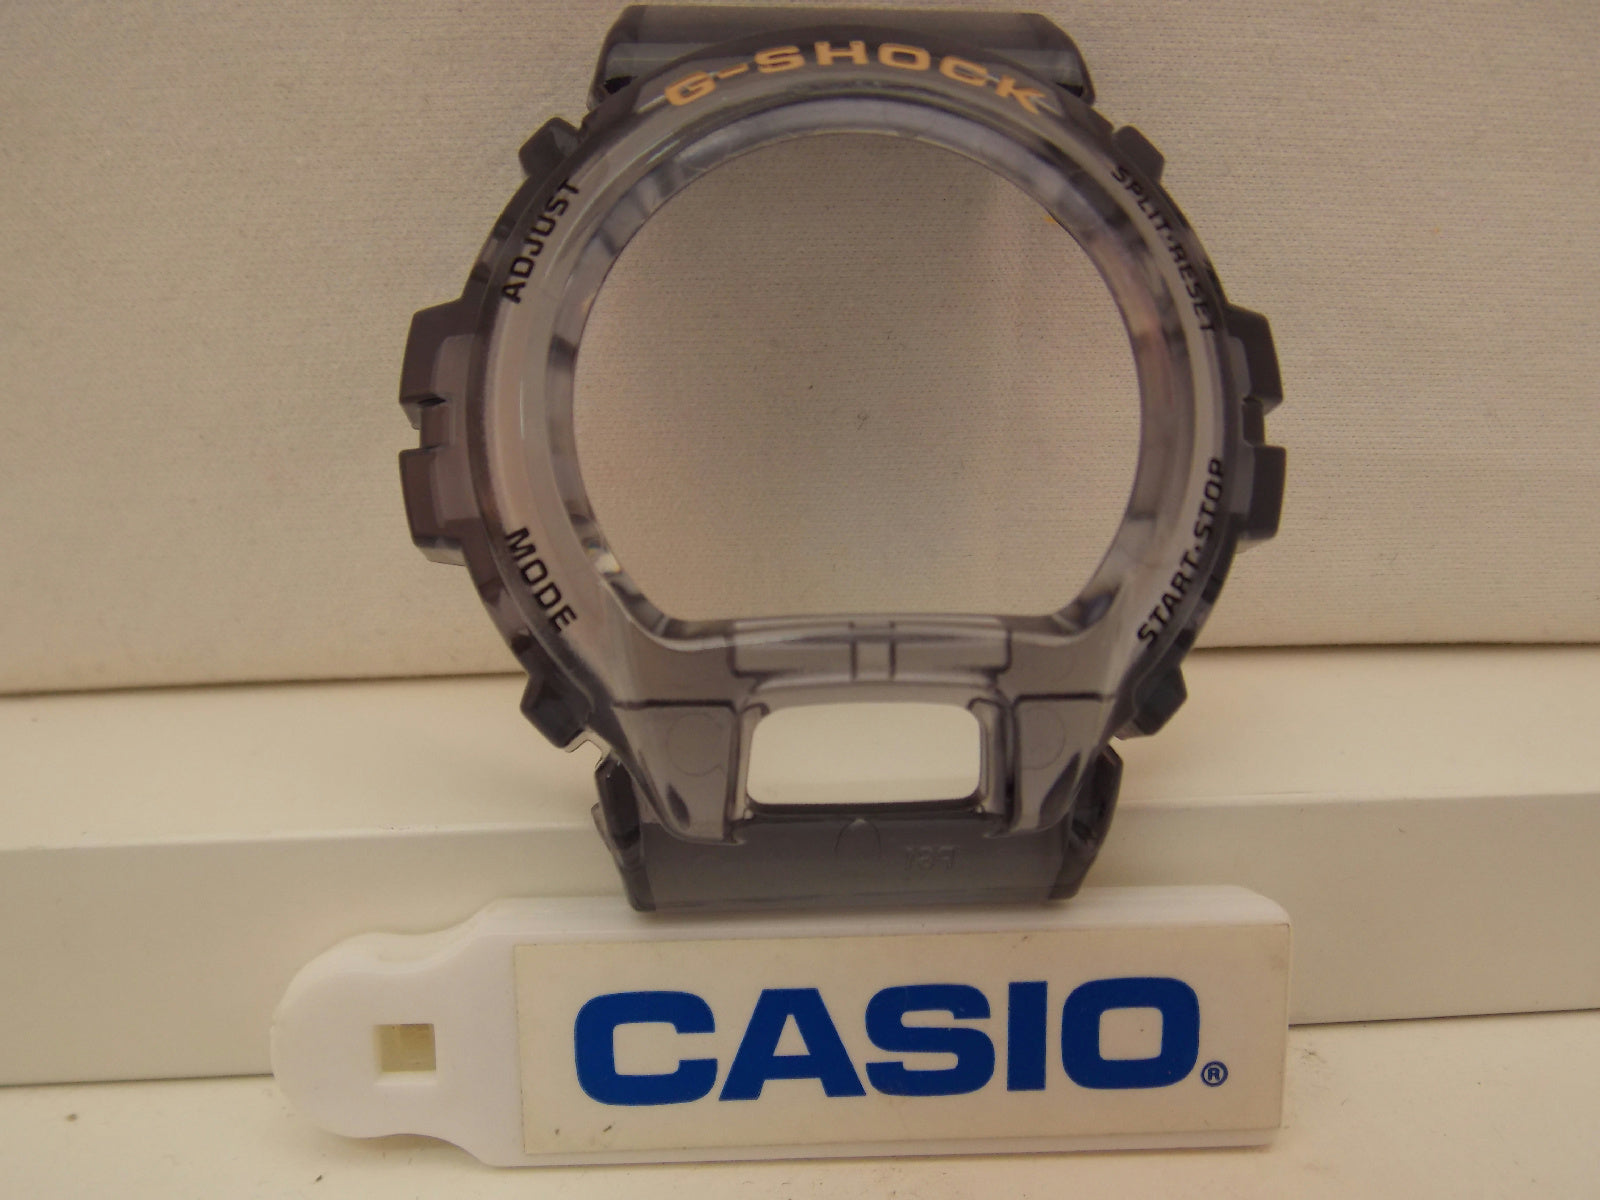 Casio Watch Parts DW-6900 FG-8 Smoke Gray Bezel/Shell W/Gold Tone Lettering